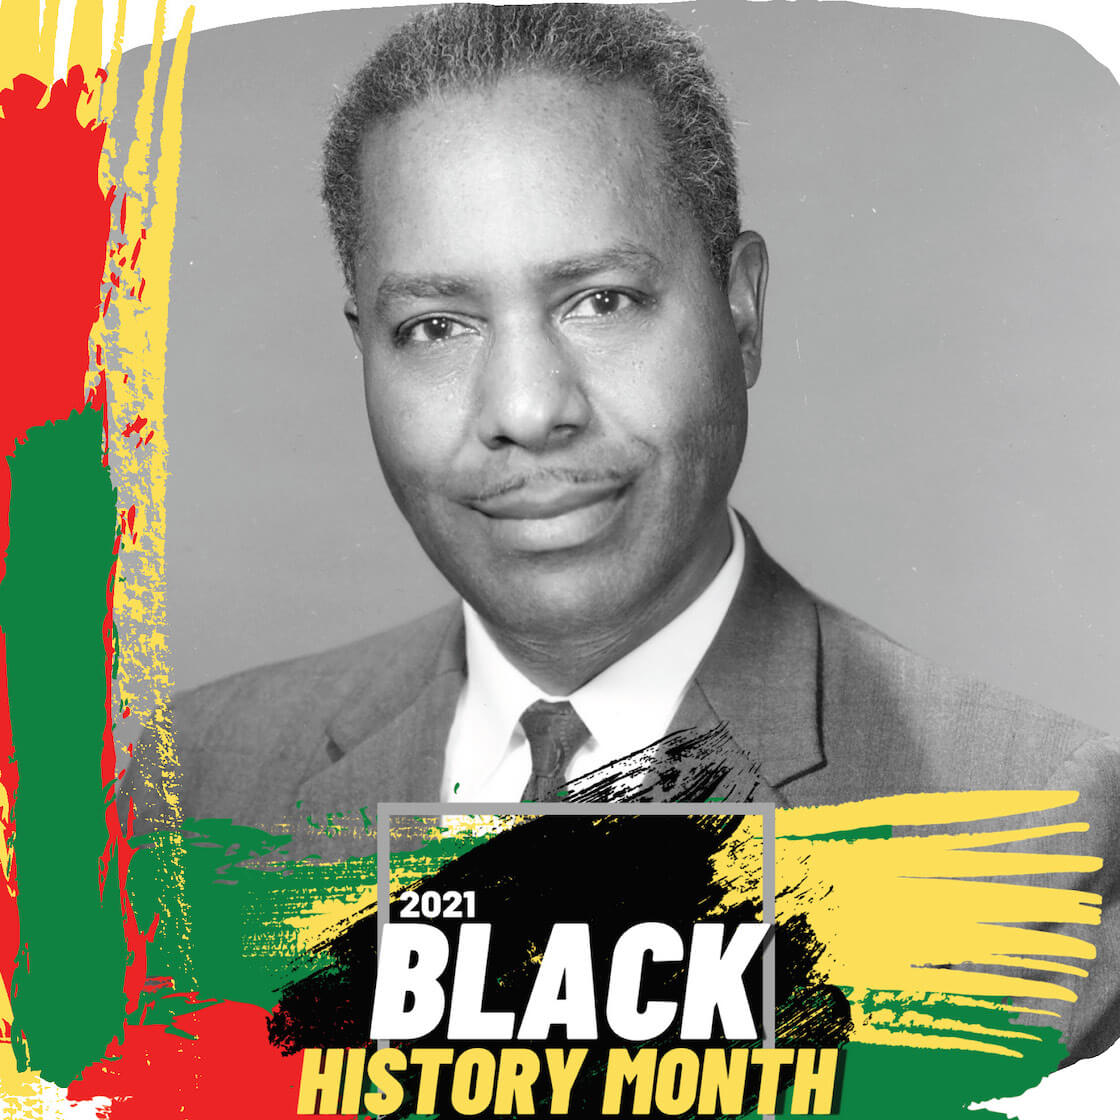 Photo of Robert McAfee, with text reading 2021 Black History Month